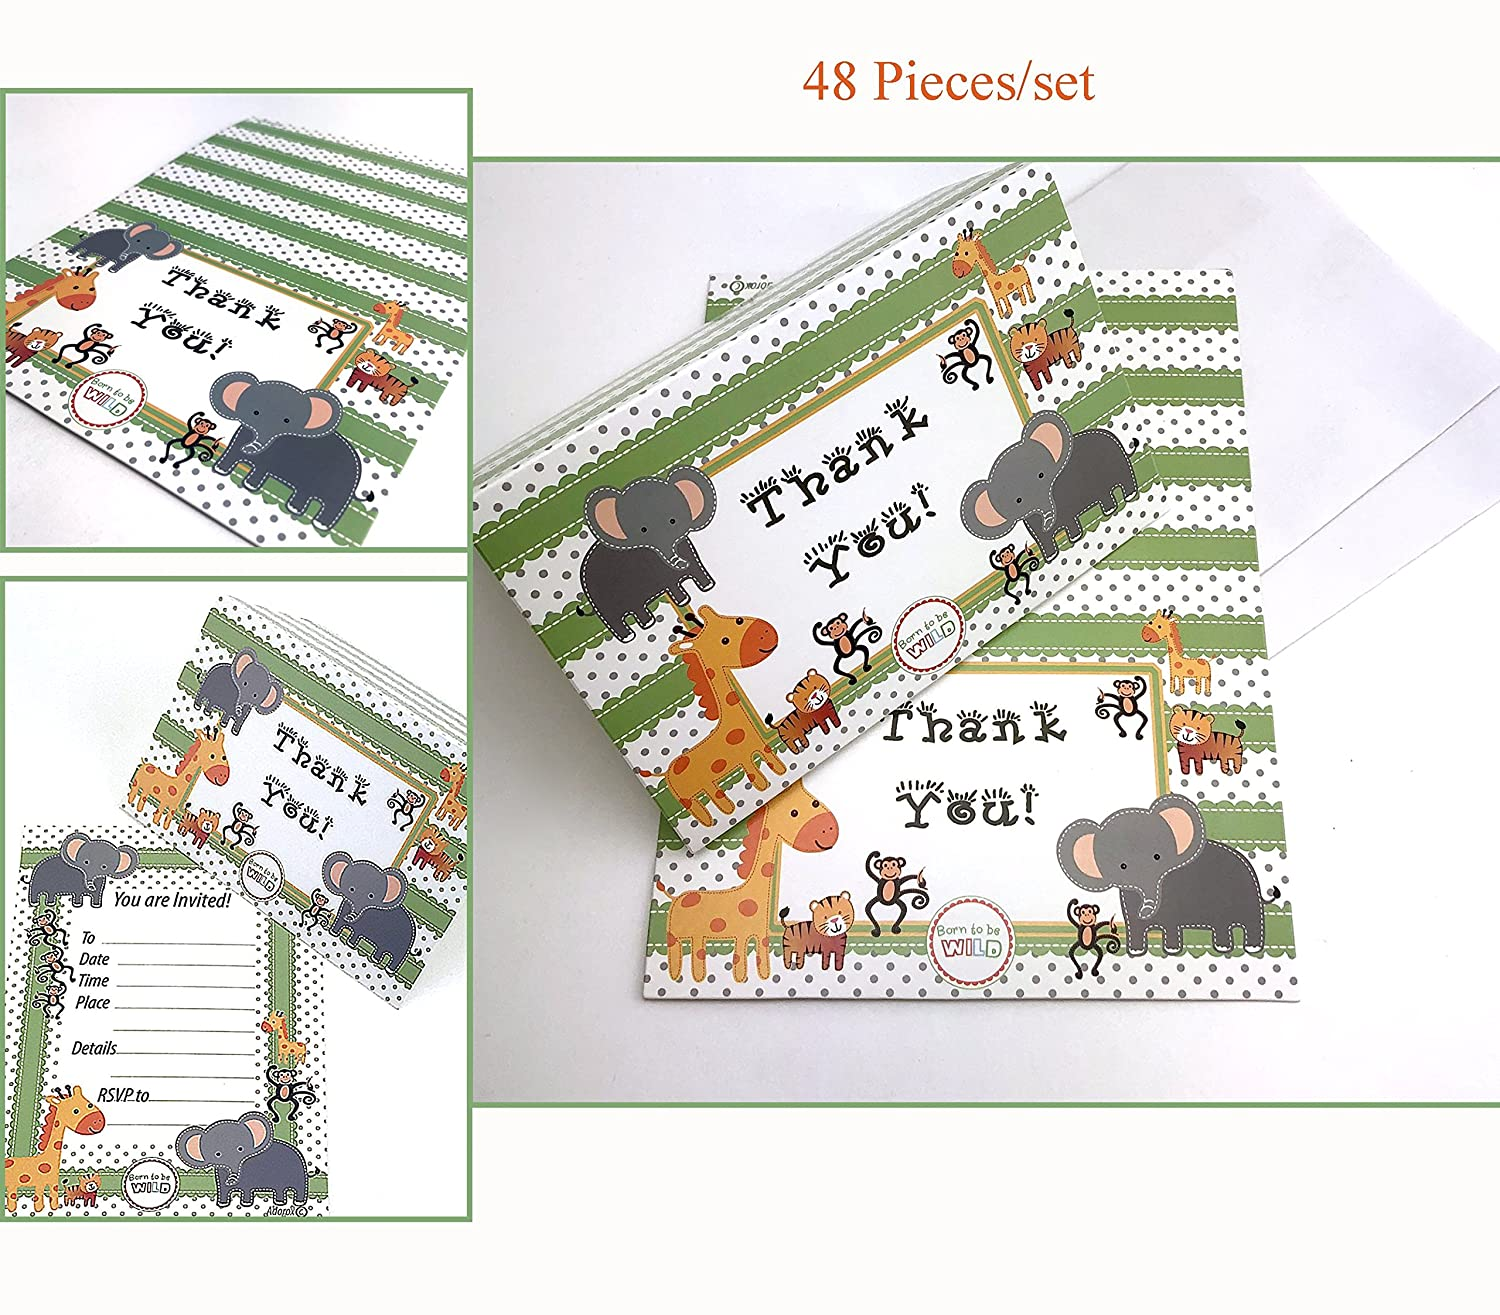 Adorox 48 Pieces Baby Jungle Zoo Animals Thank You Cards Baby Shower Birthday Party Safari Theme Boys Girls